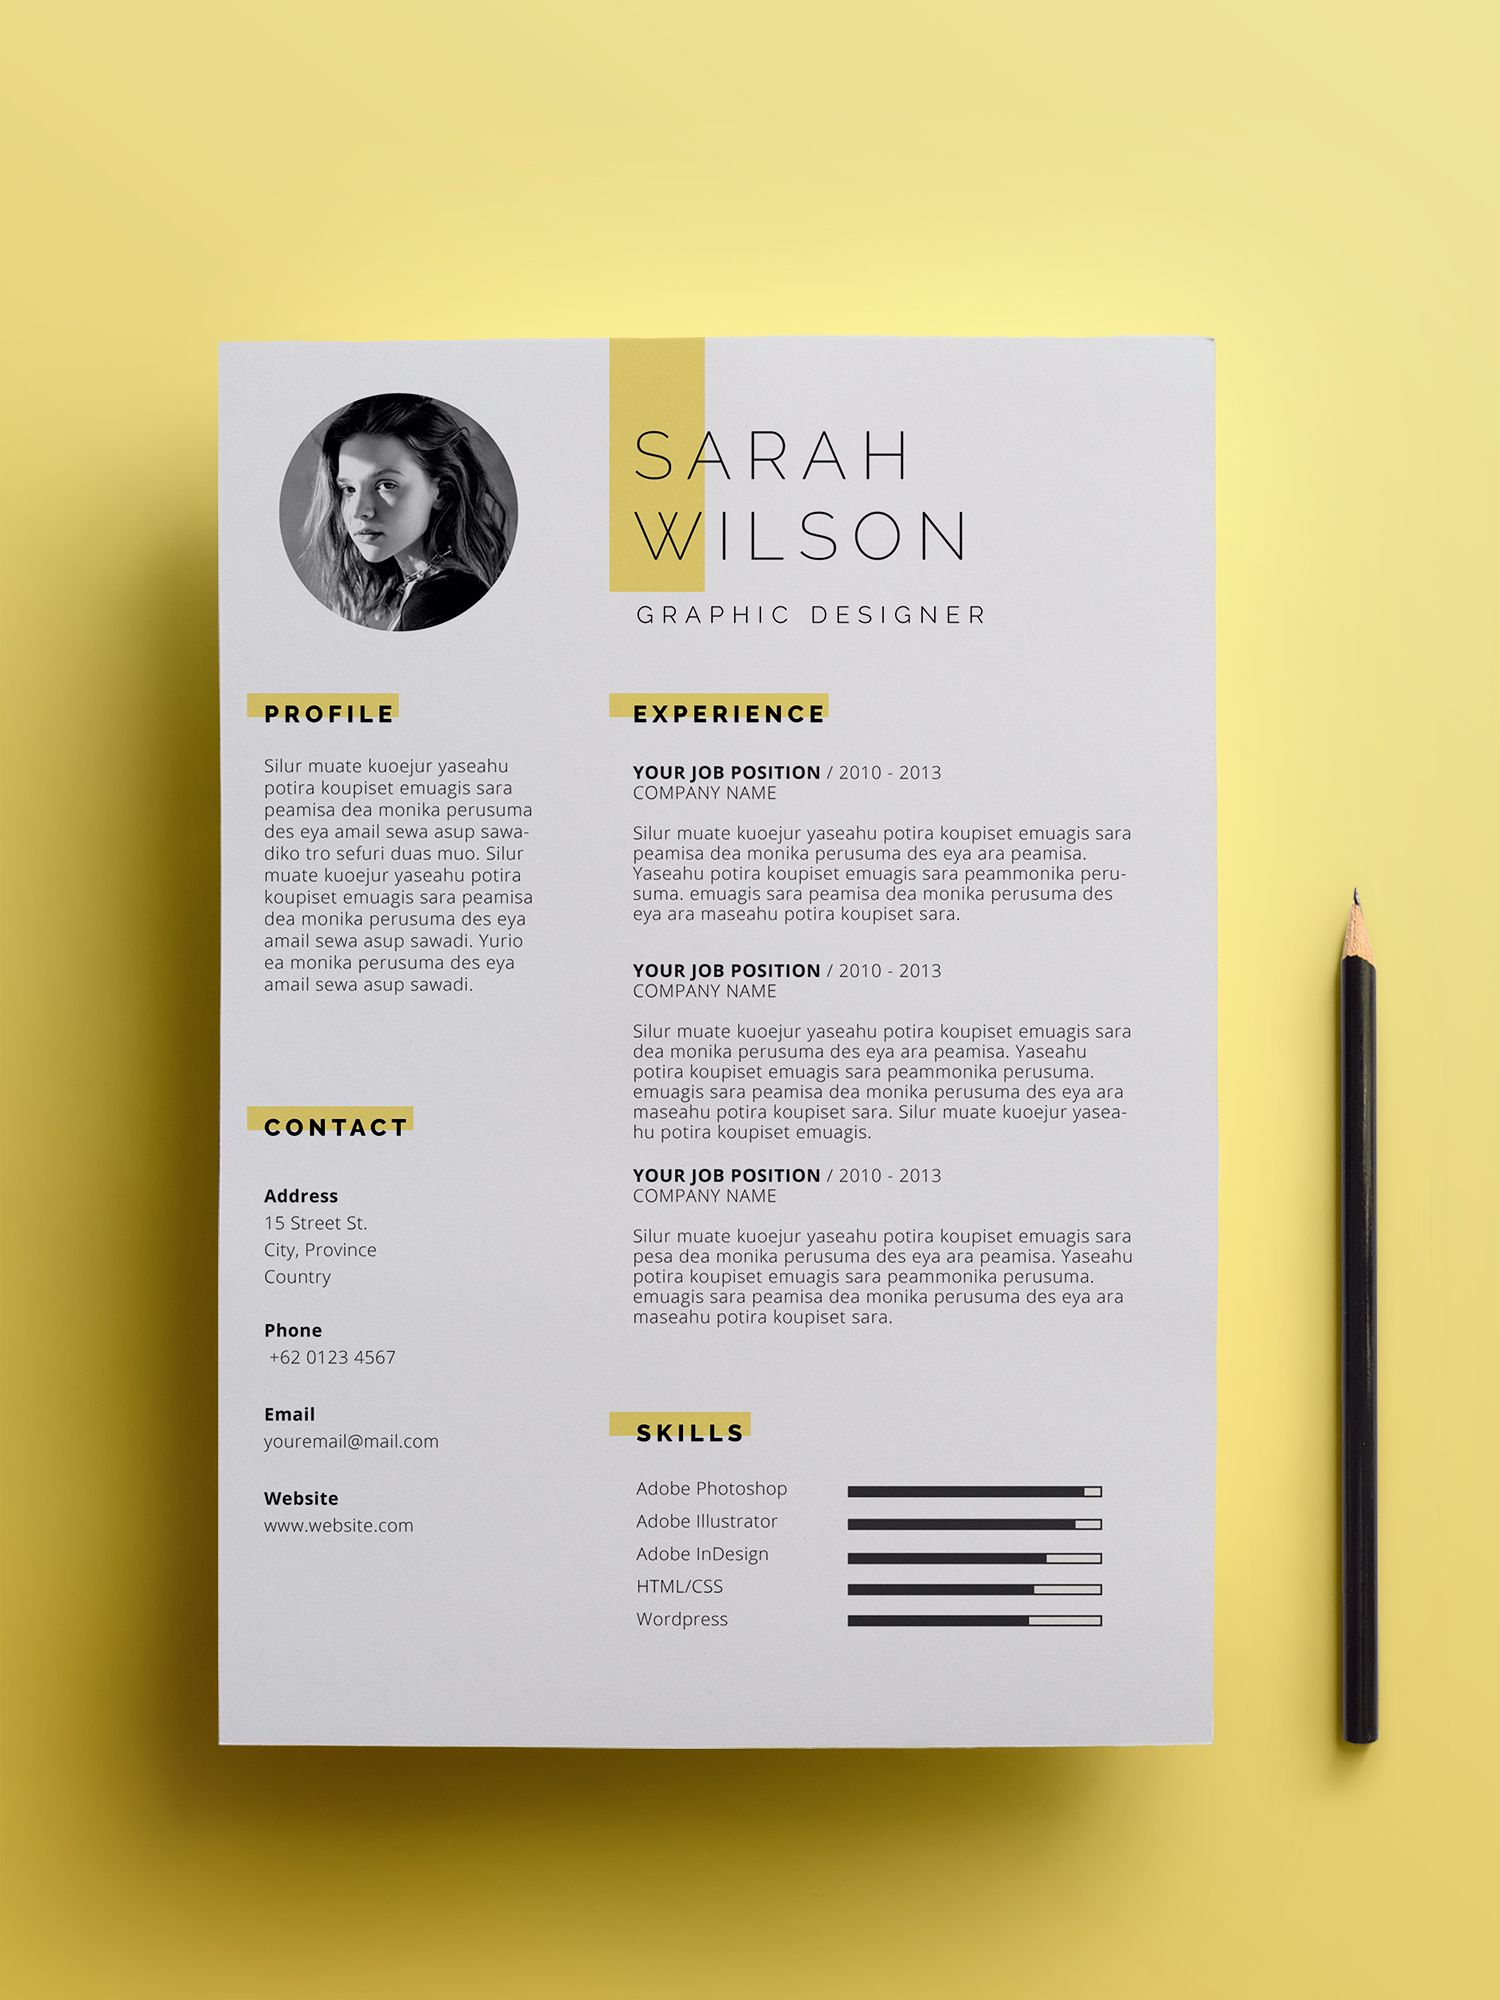 Professional Resume Template For Microsoft Word With Cover Letter Resume Template With Photo Resume Template Word Cv Template In 2021 Graphic Design Resume Graphic Design Cv Resume Design Creative